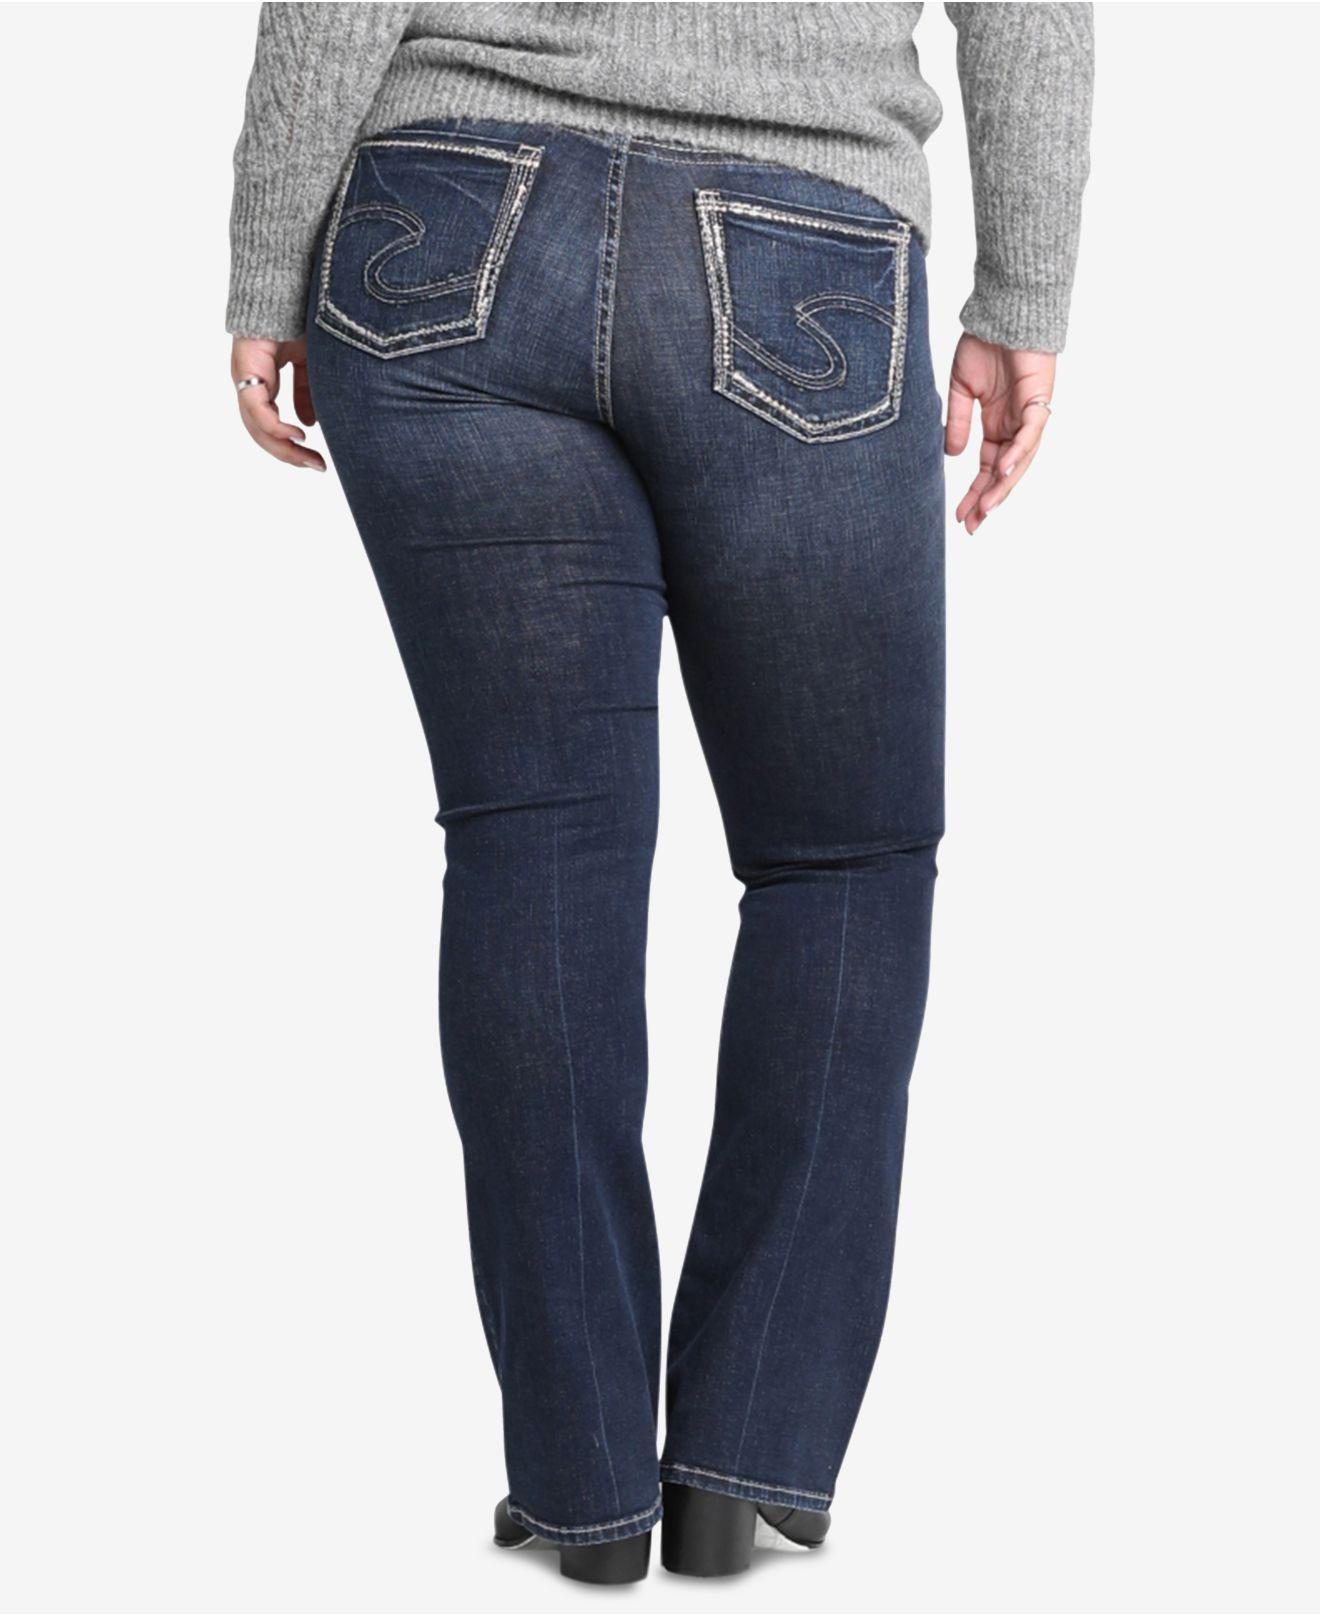 0a7f1e0d Lyst - Silver Jeans Co. Plus Size Avery High-rise Curvy-fit Boot-cut Jeans  in Blue